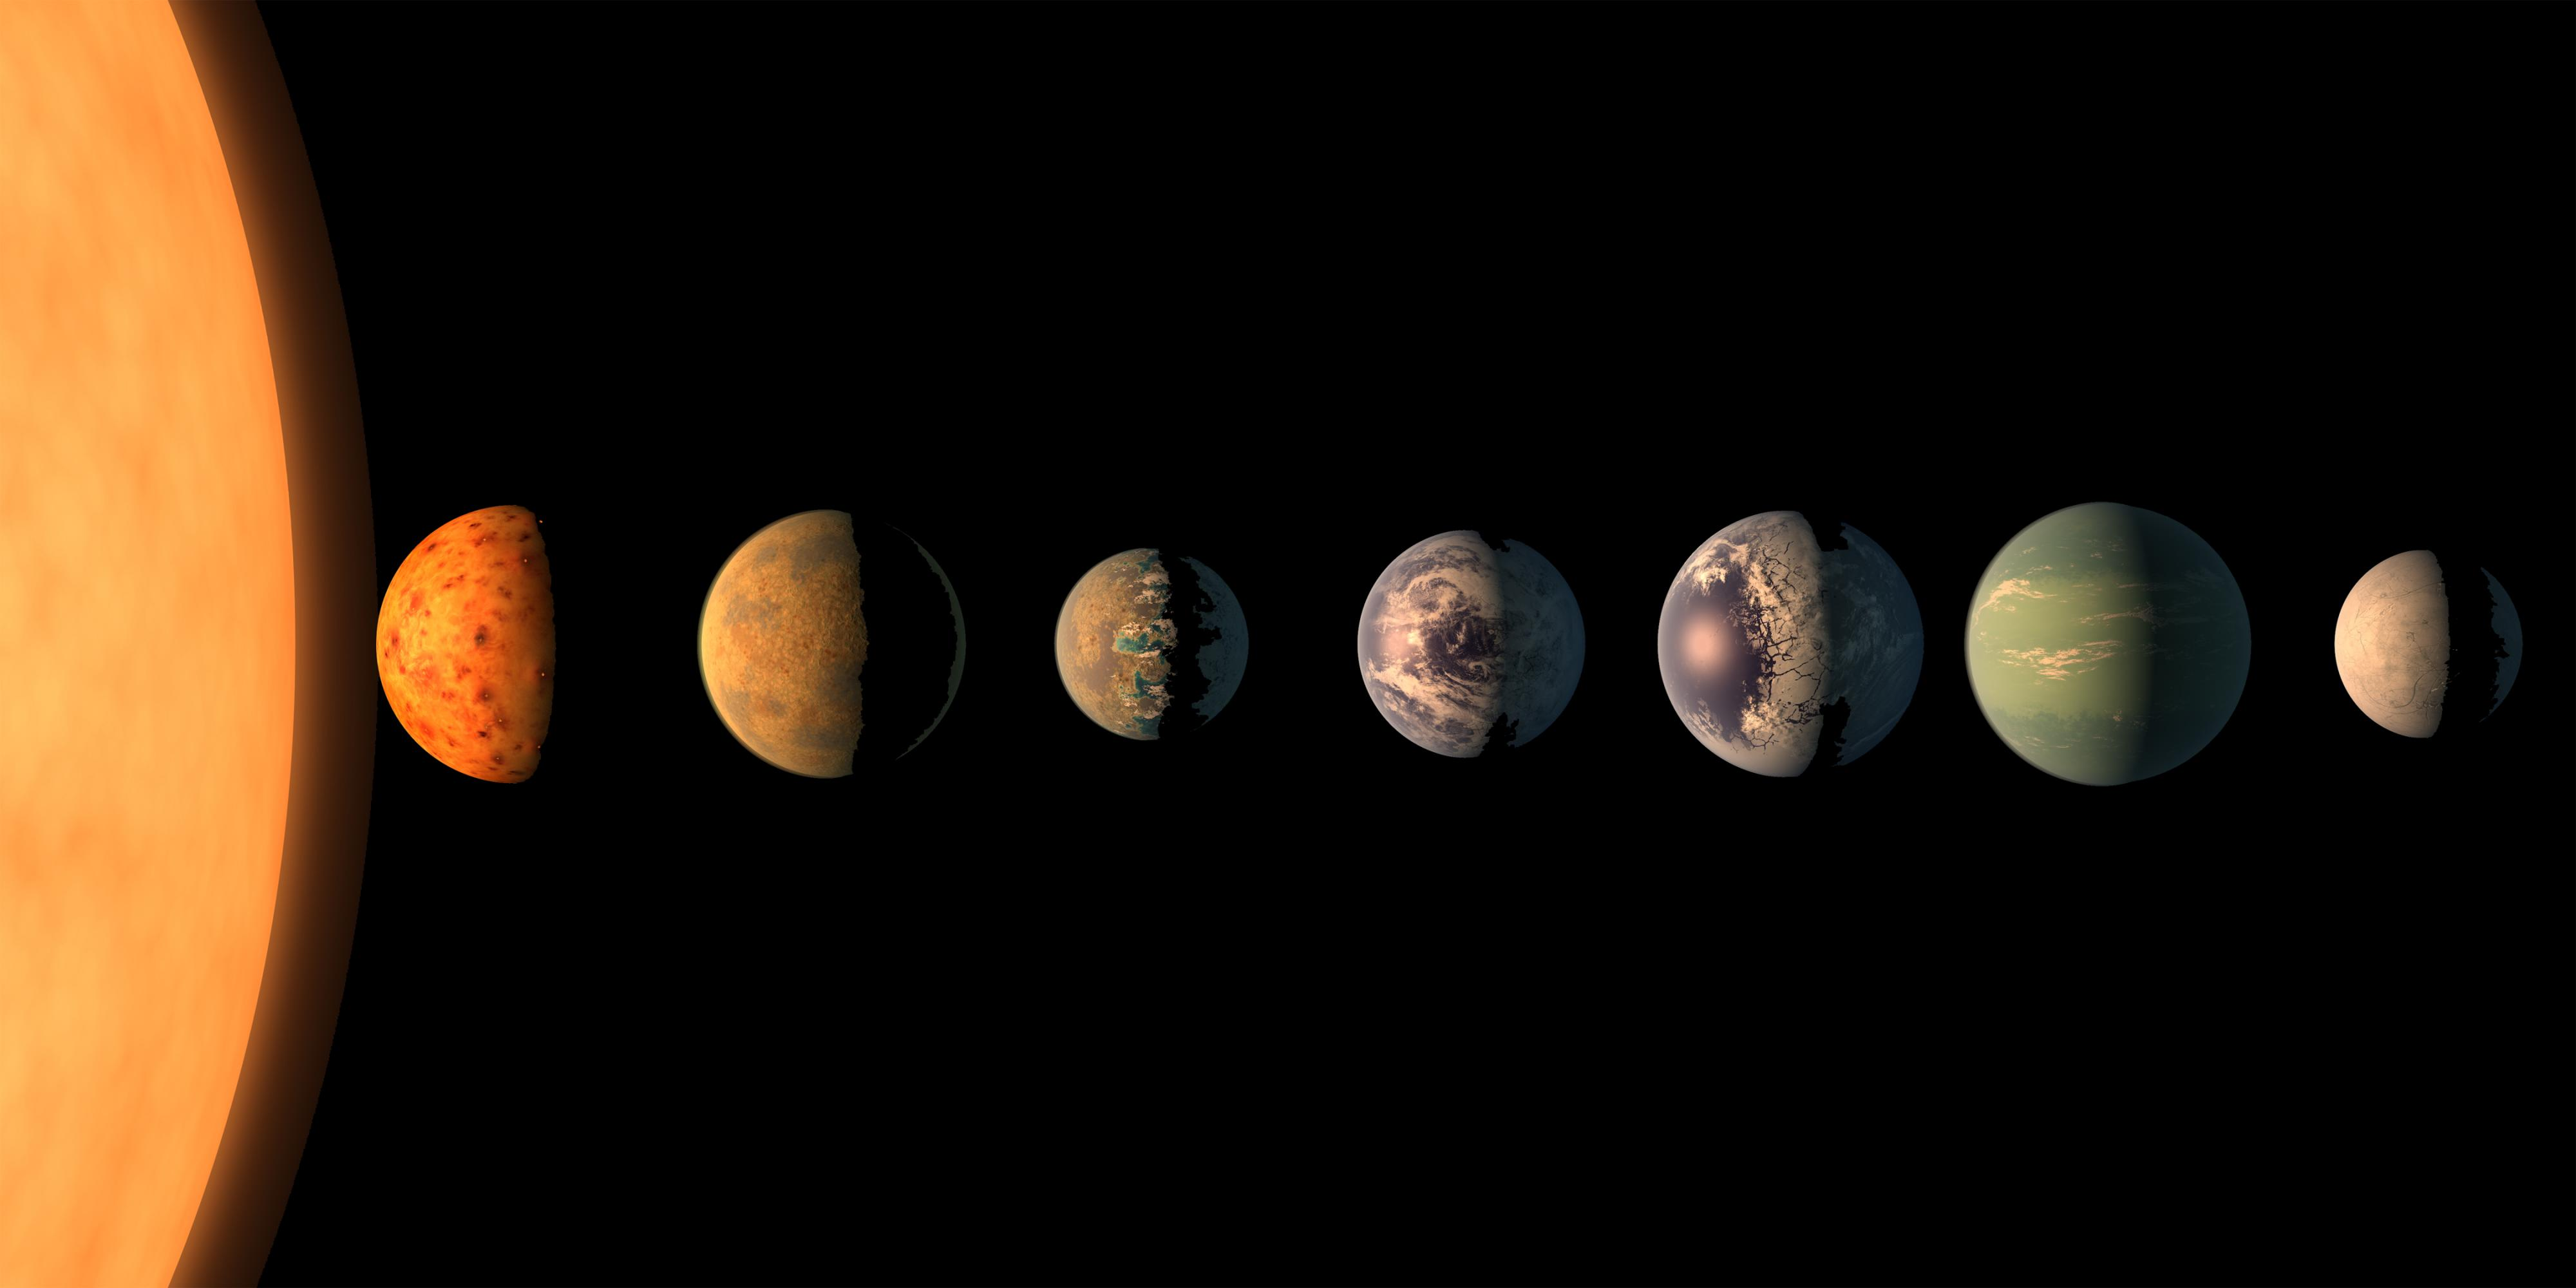 solar system with exoplanets - photo #30